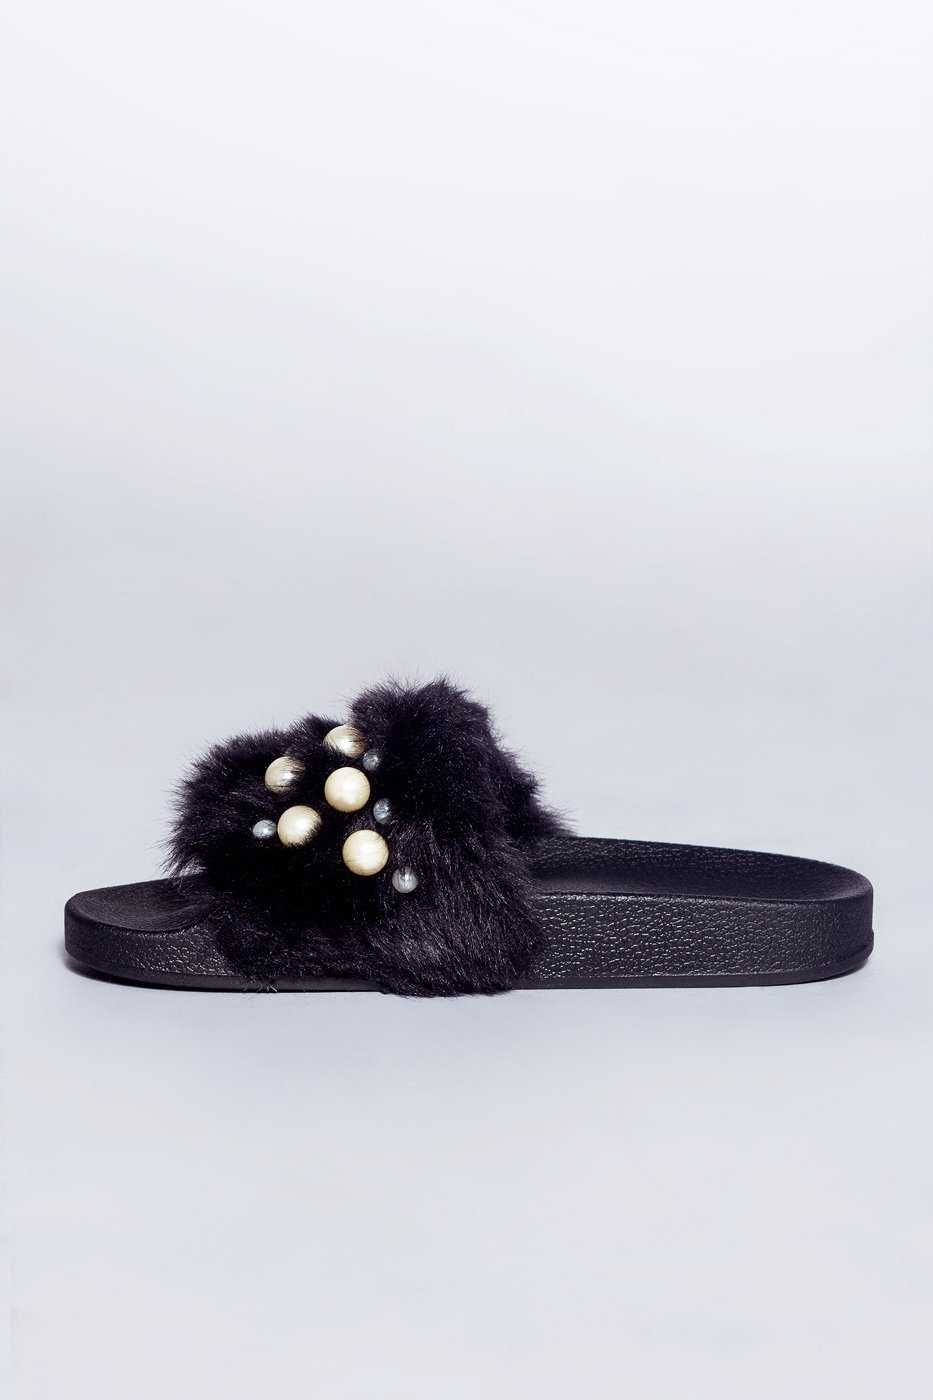 Shoes - Chanell Fur Slides - Black